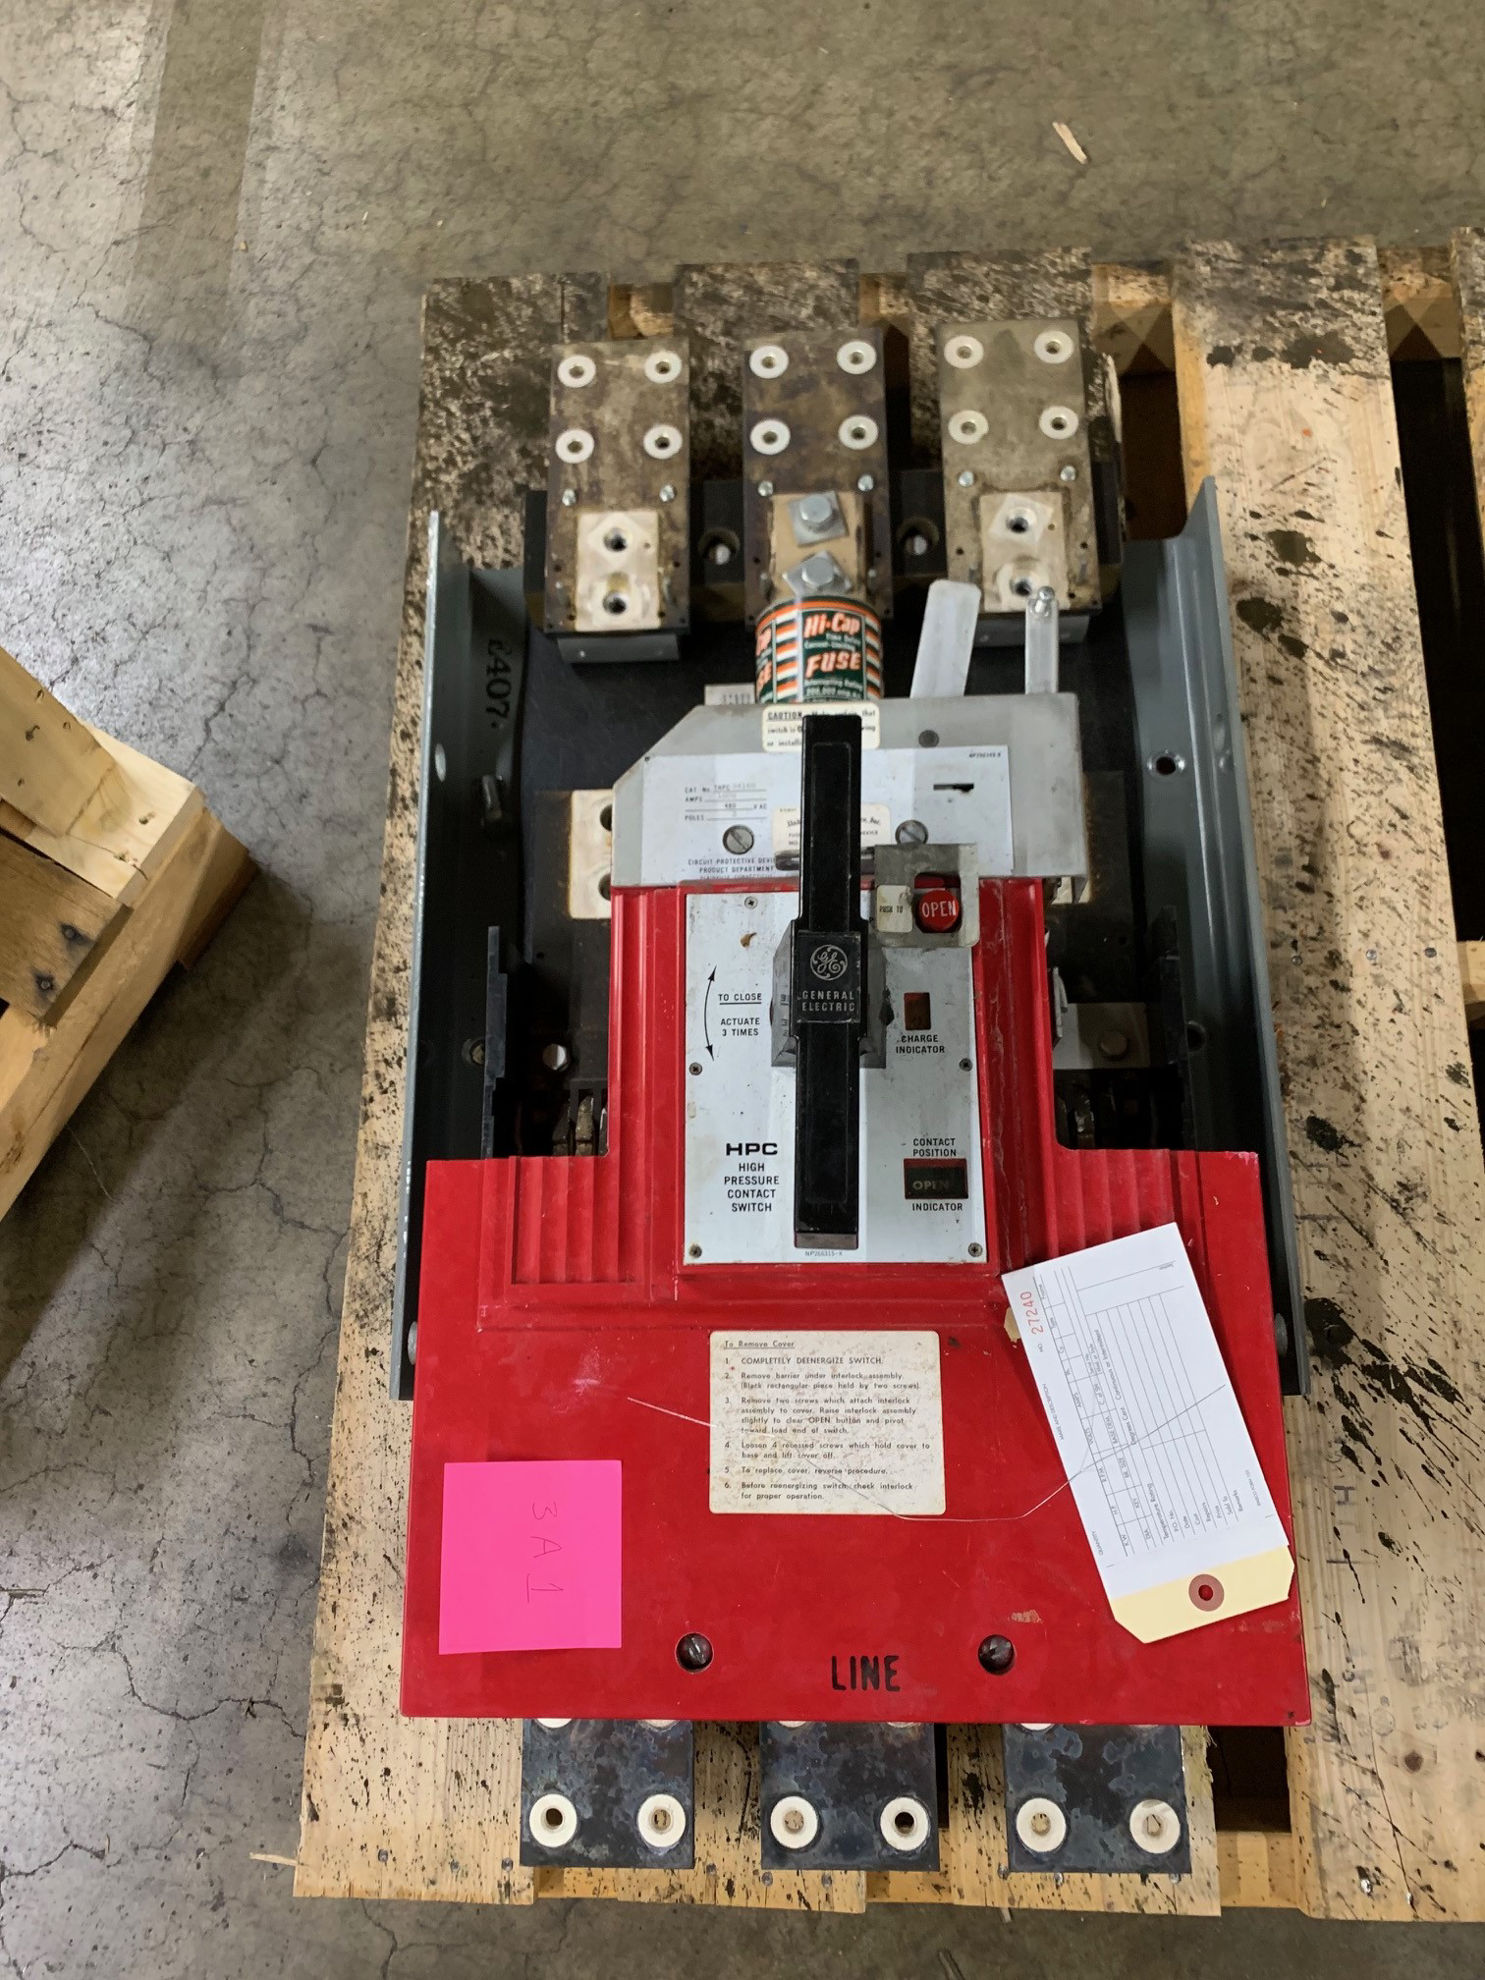 Picture of THPC3416B GE 1600A 480V 3P GE HPC Fusible Switch